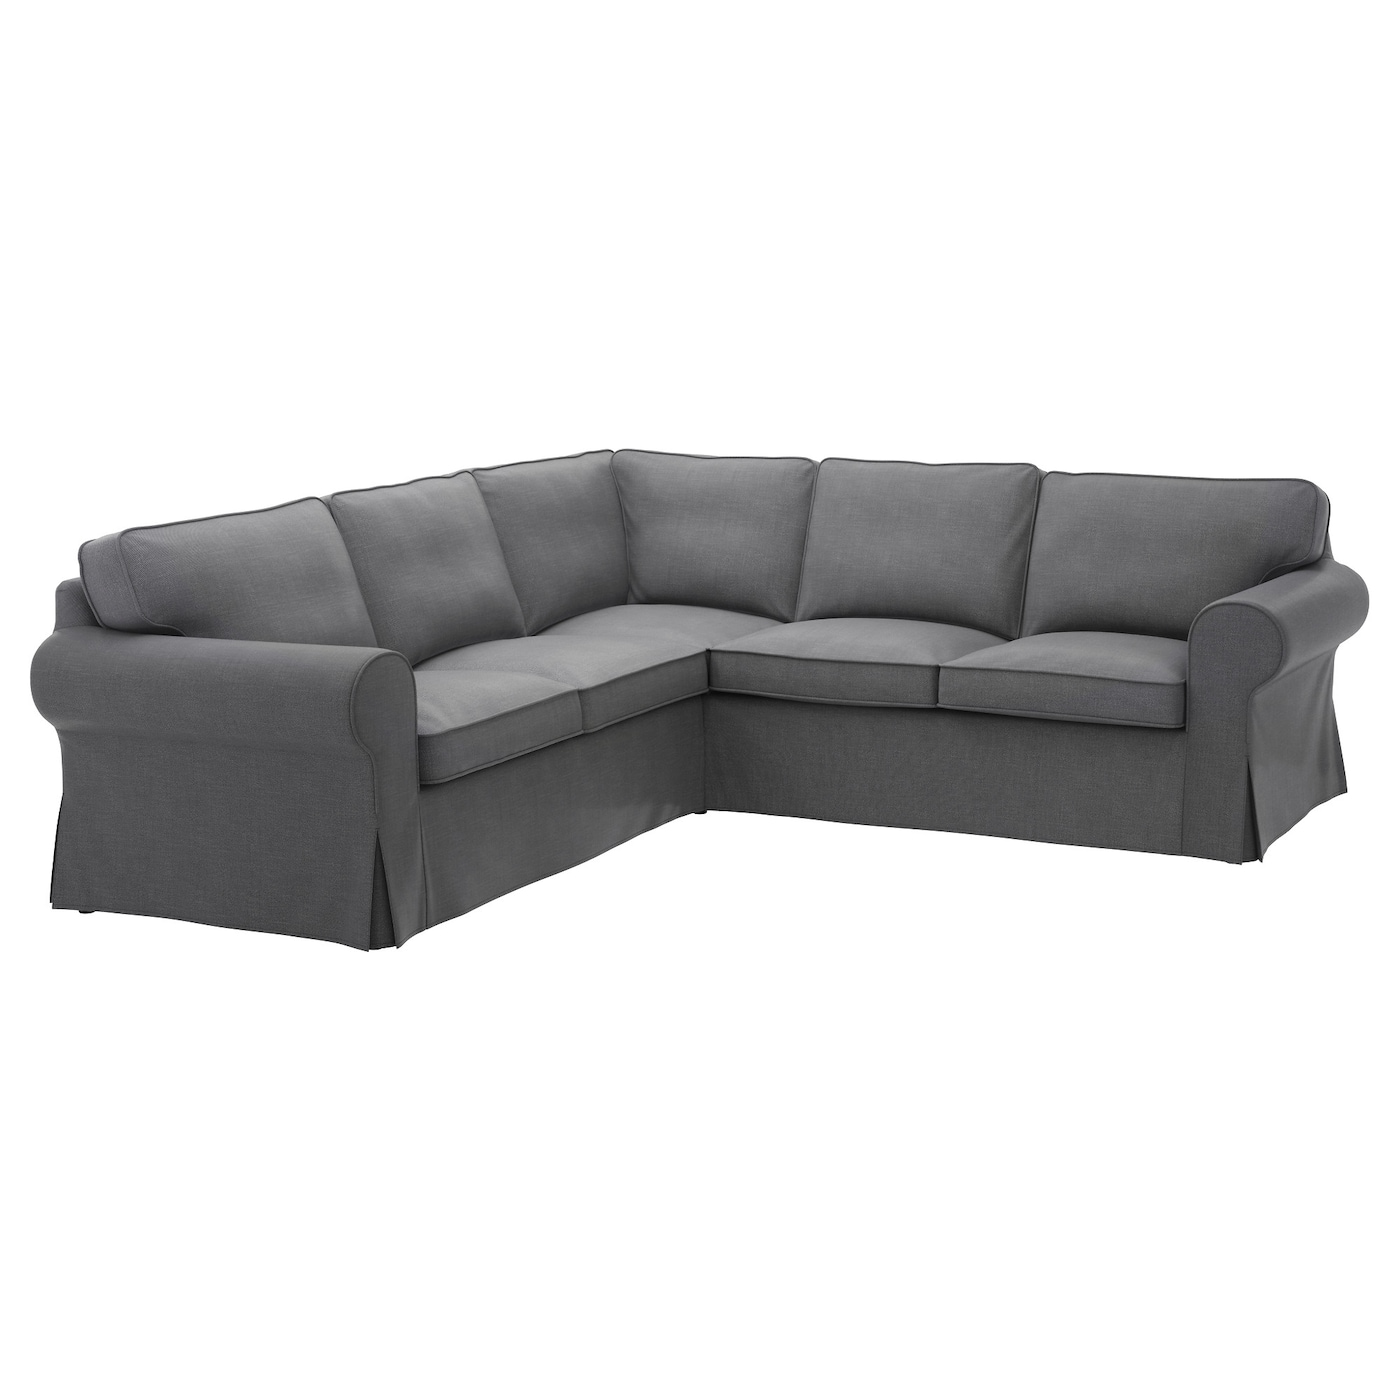 ikea ektorp sofas ektorp corner sofa 4 seat nordvalla dark grey ikea ektorp sofa nordvalla. Black Bedroom Furniture Sets. Home Design Ideas